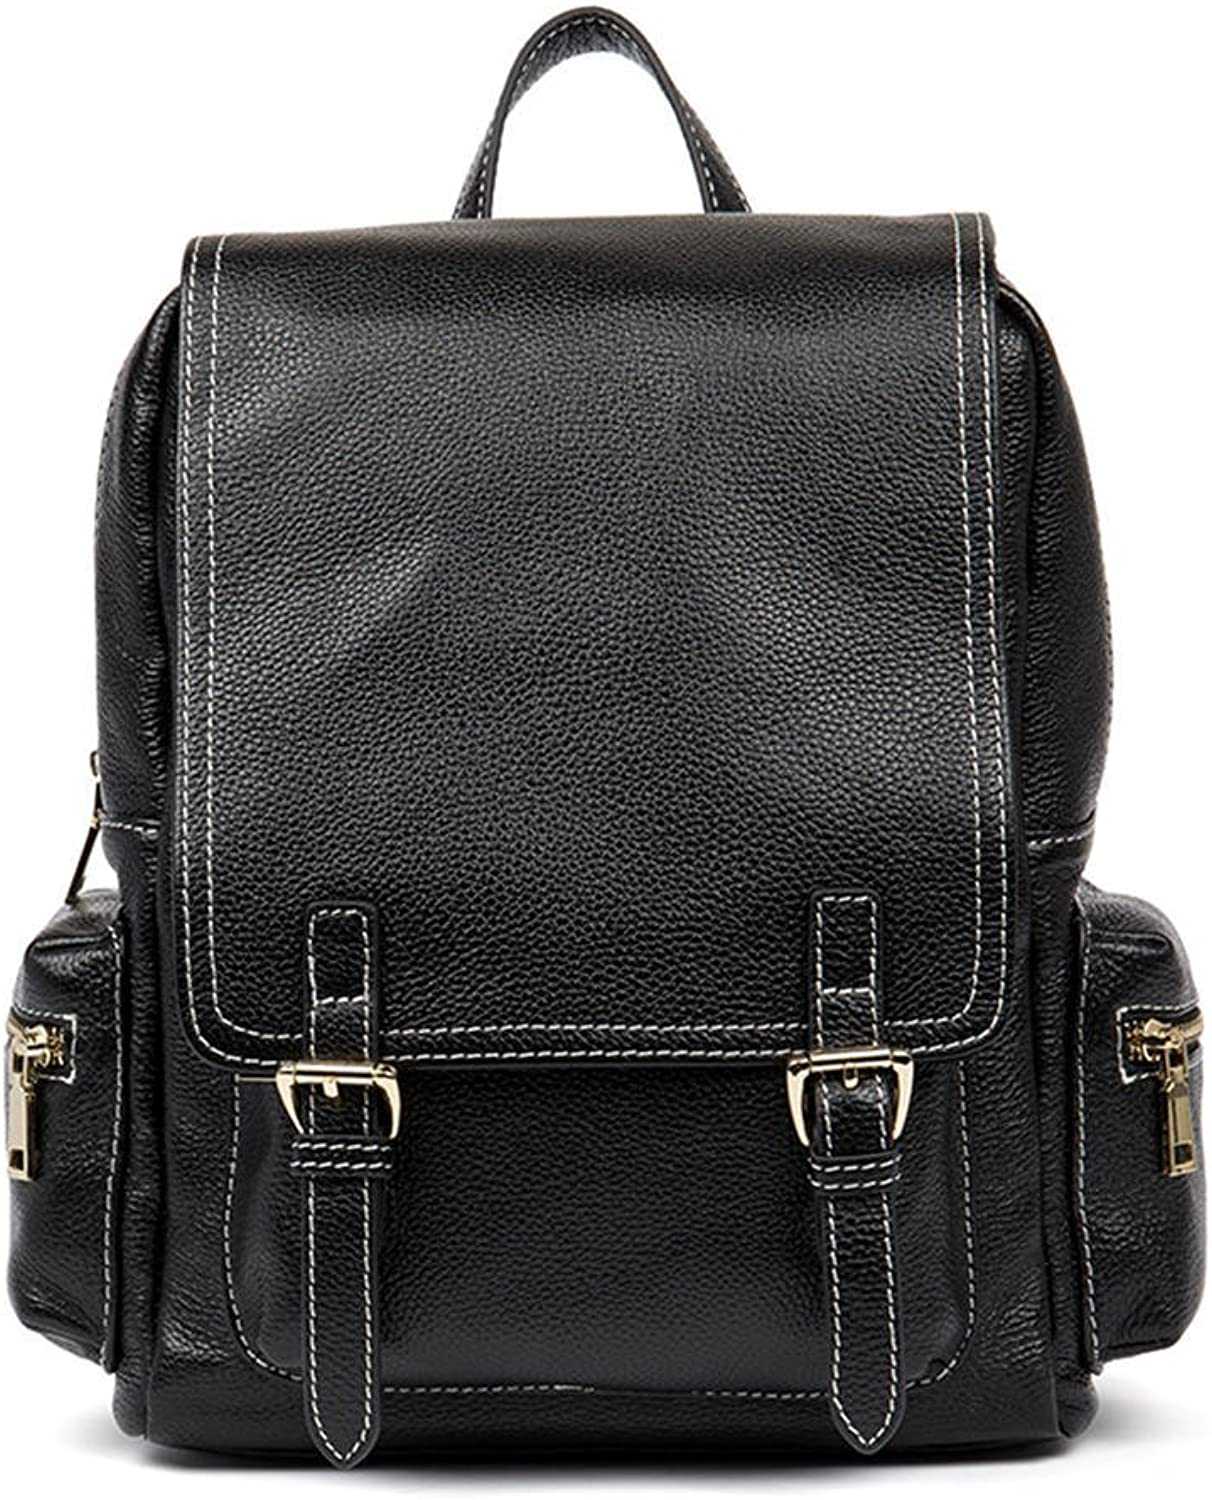 HMILY First Layer Cowhide Retro Style Ladies Shoulder Bag Fashion Wild Backpack H7020 Black